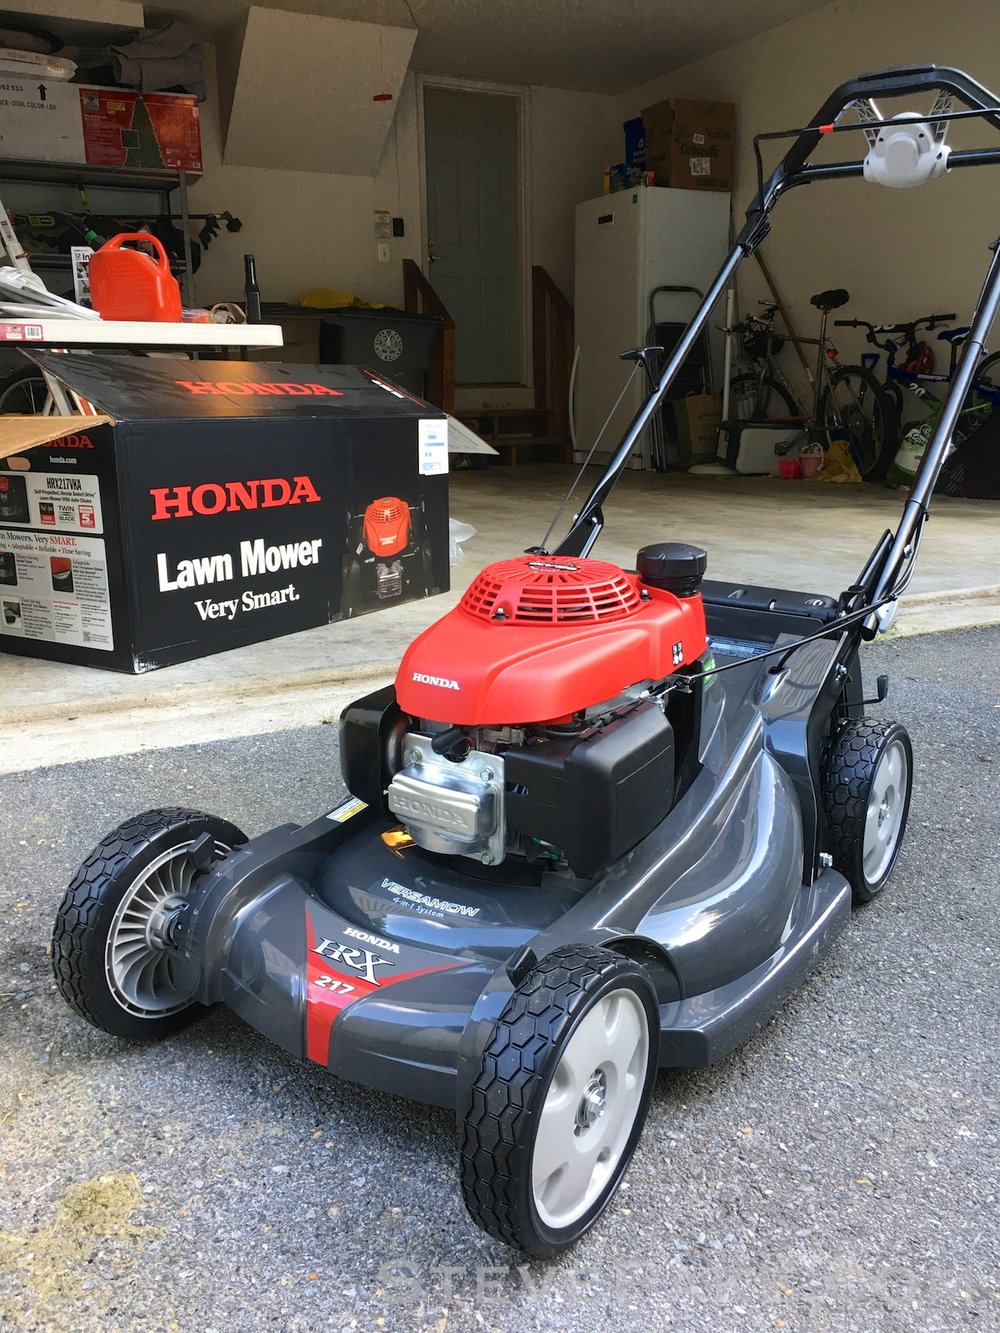 Honda fire-breathing GCV190 powered self-propelled lawn mower. VTEEEEEC!!!!!!!